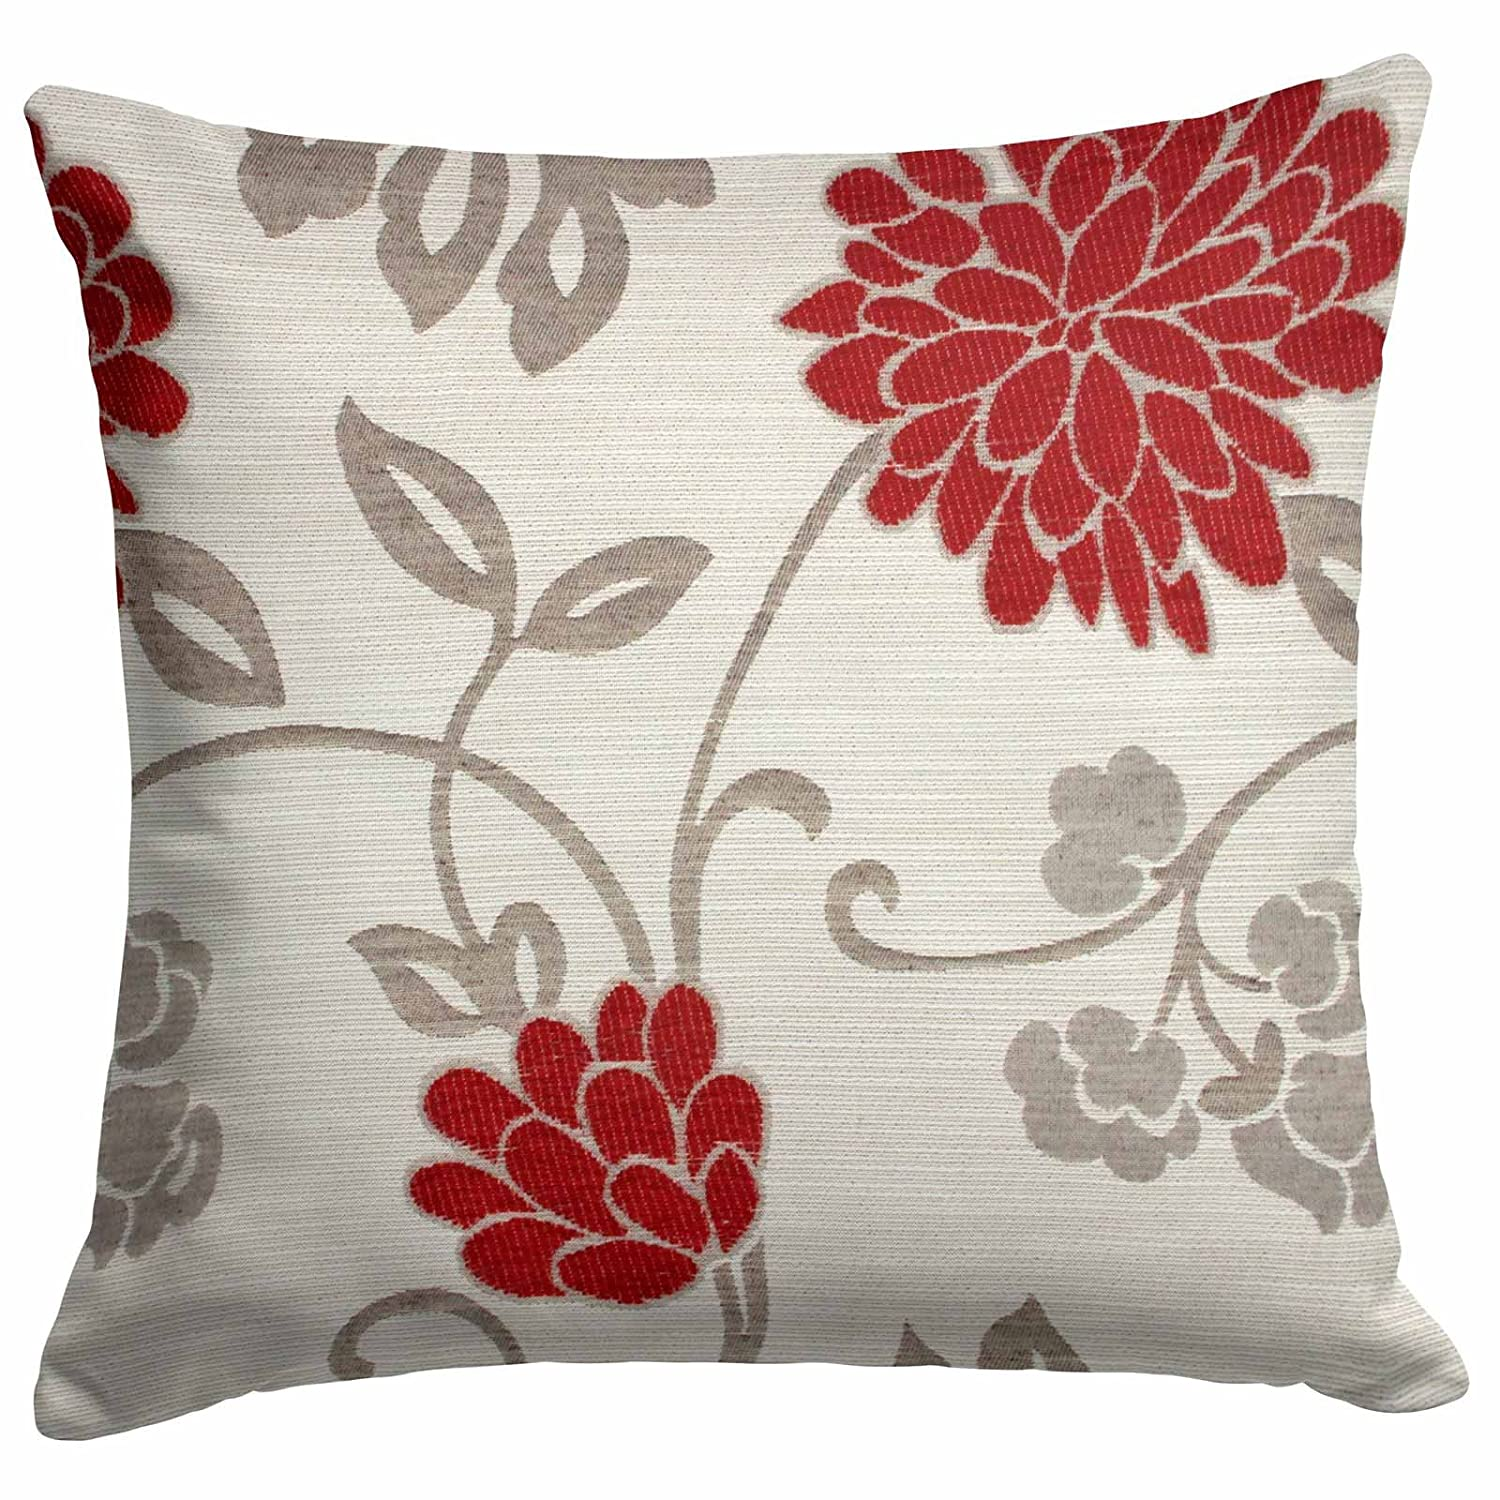 Chrystie Cushion Cover, Chenille Floral Cushion, Exclusive Ideal Textiles Design, Pillow Covers, 18